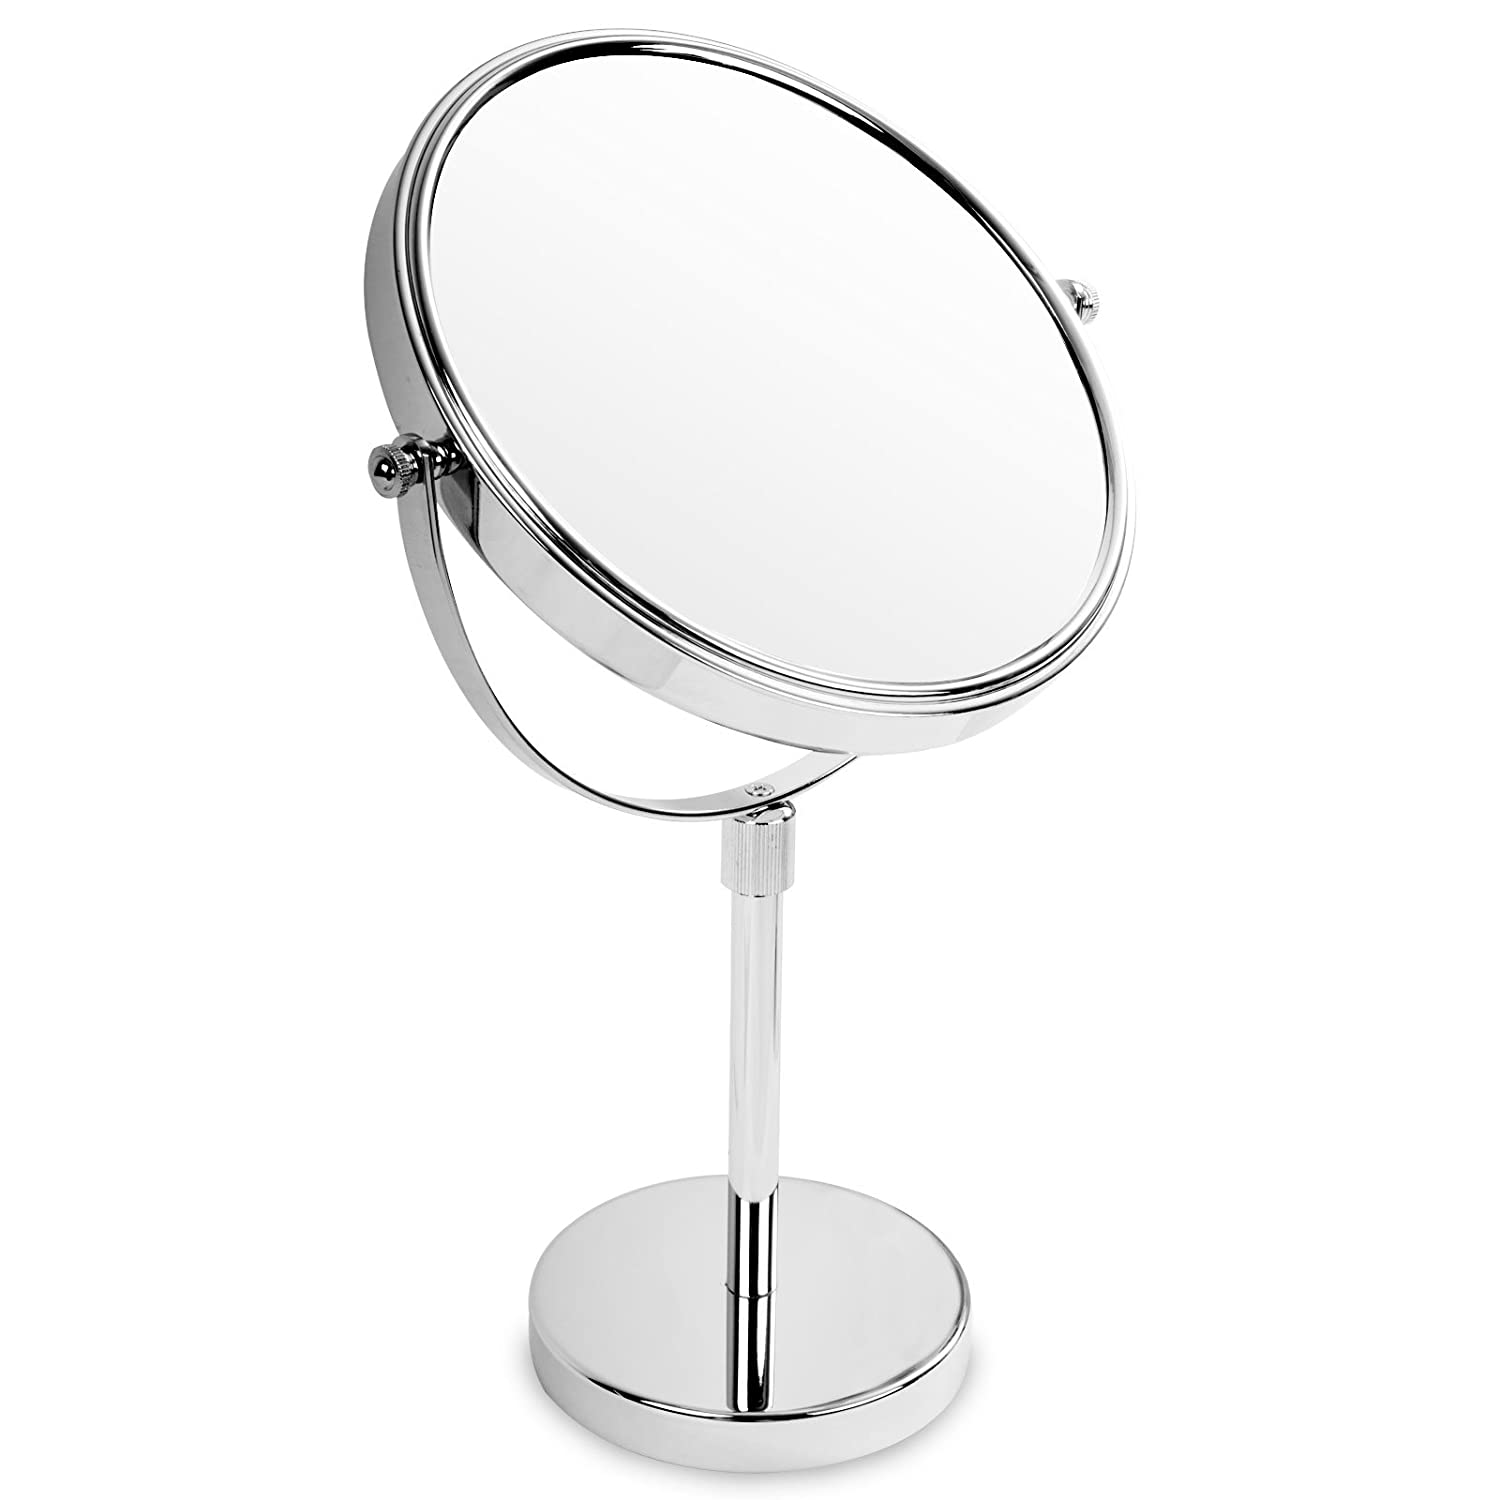 casa pura® Cosmetic Table Mirror 18.5 cm Diameter, 5x Magnification | 3 Magnification Options Available